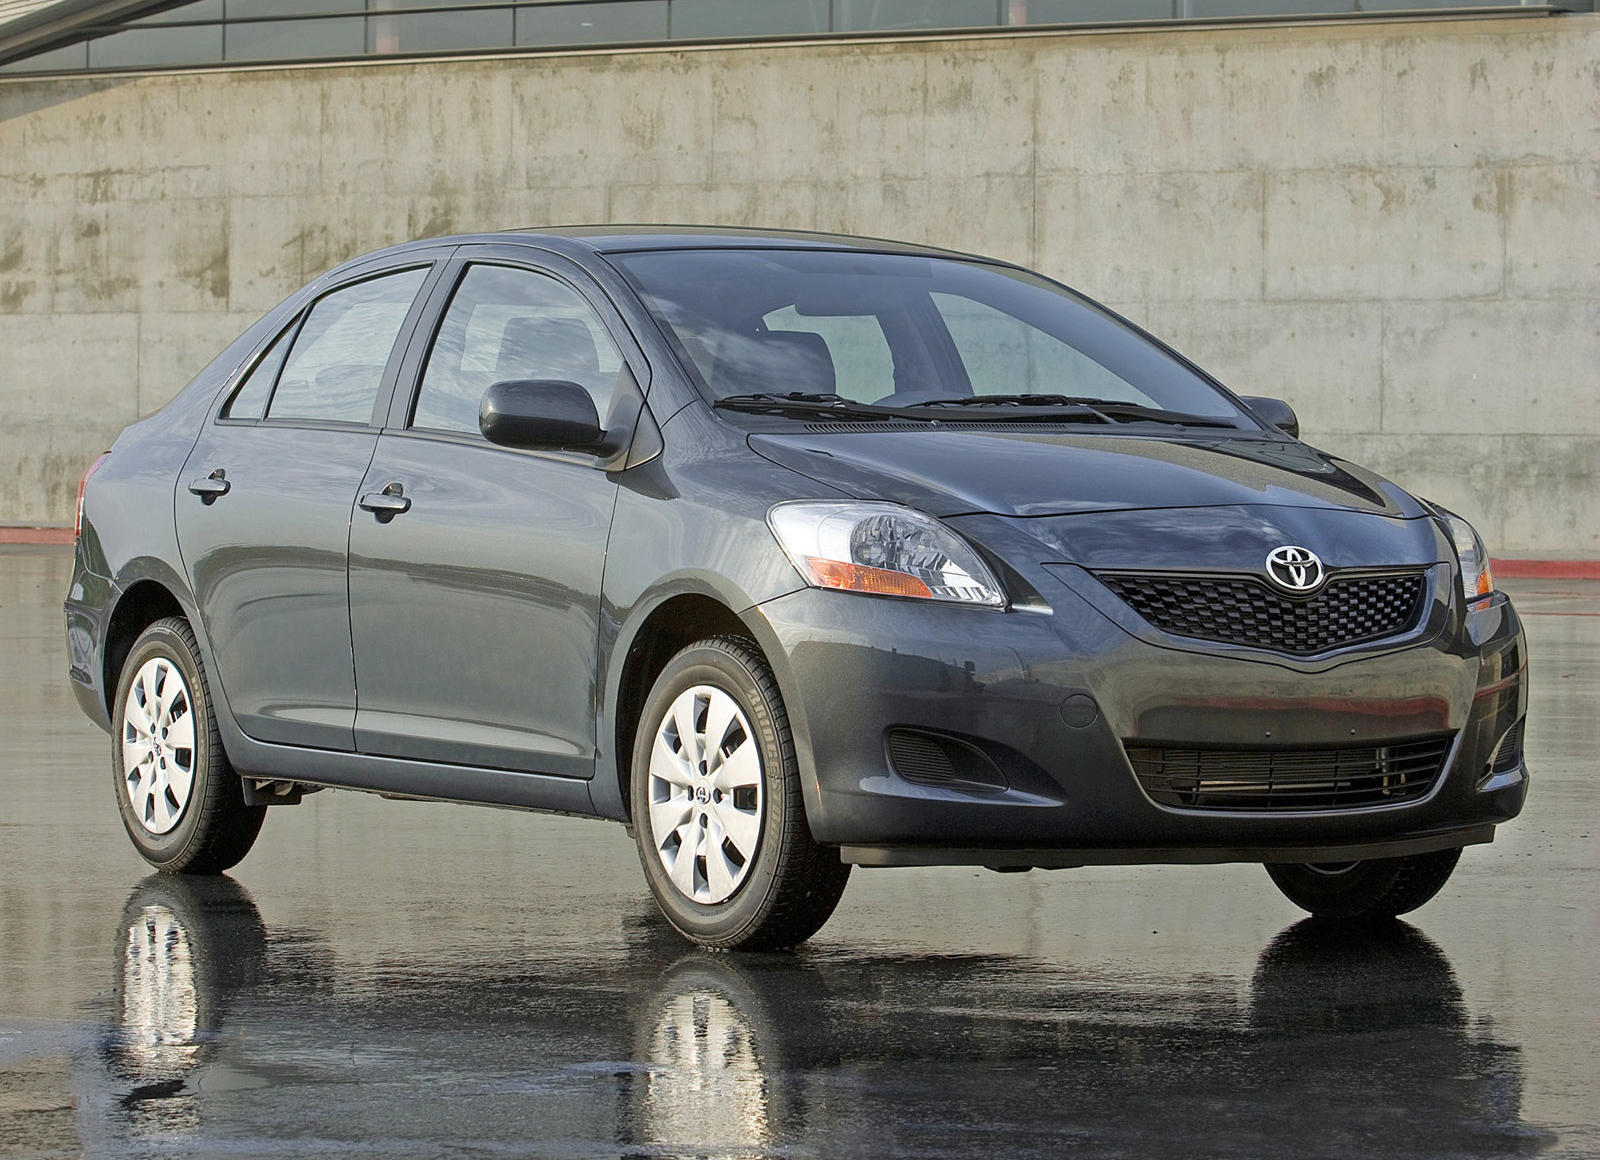 2010 Toyota Yaris Sedan Review Trims Specs Price New Interior Features Exterior Design And Specifications Carbuzz